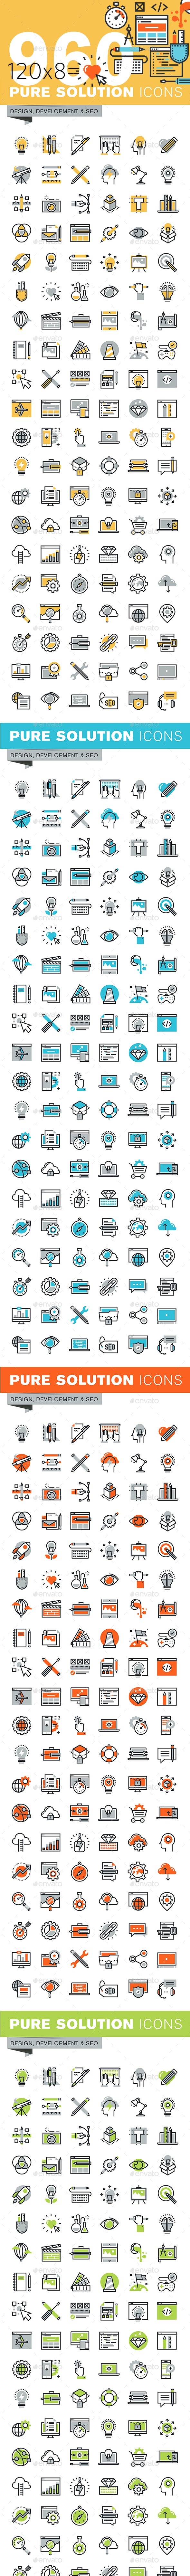 Set of Thin Line Flat Design Icons of Design, Development and SEO - Icons